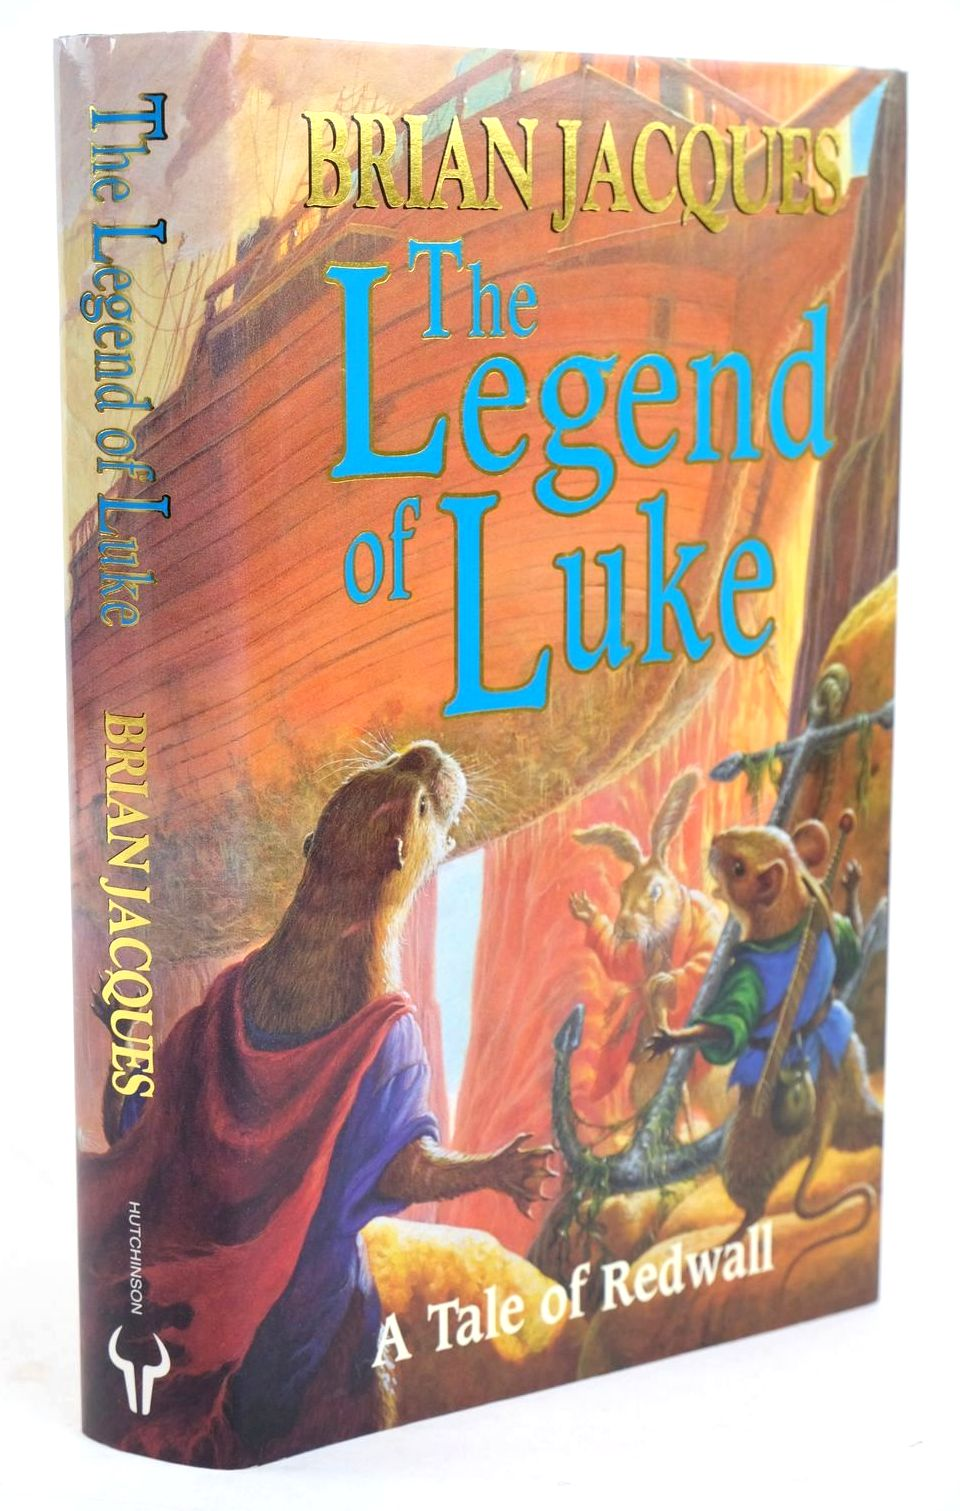 Photo of THE LEGEND OF LUKE written by Jacques, Brian illustrated by Fangorn,  published by Hutchinson (STOCK CODE: 1319400)  for sale by Stella & Rose's Books